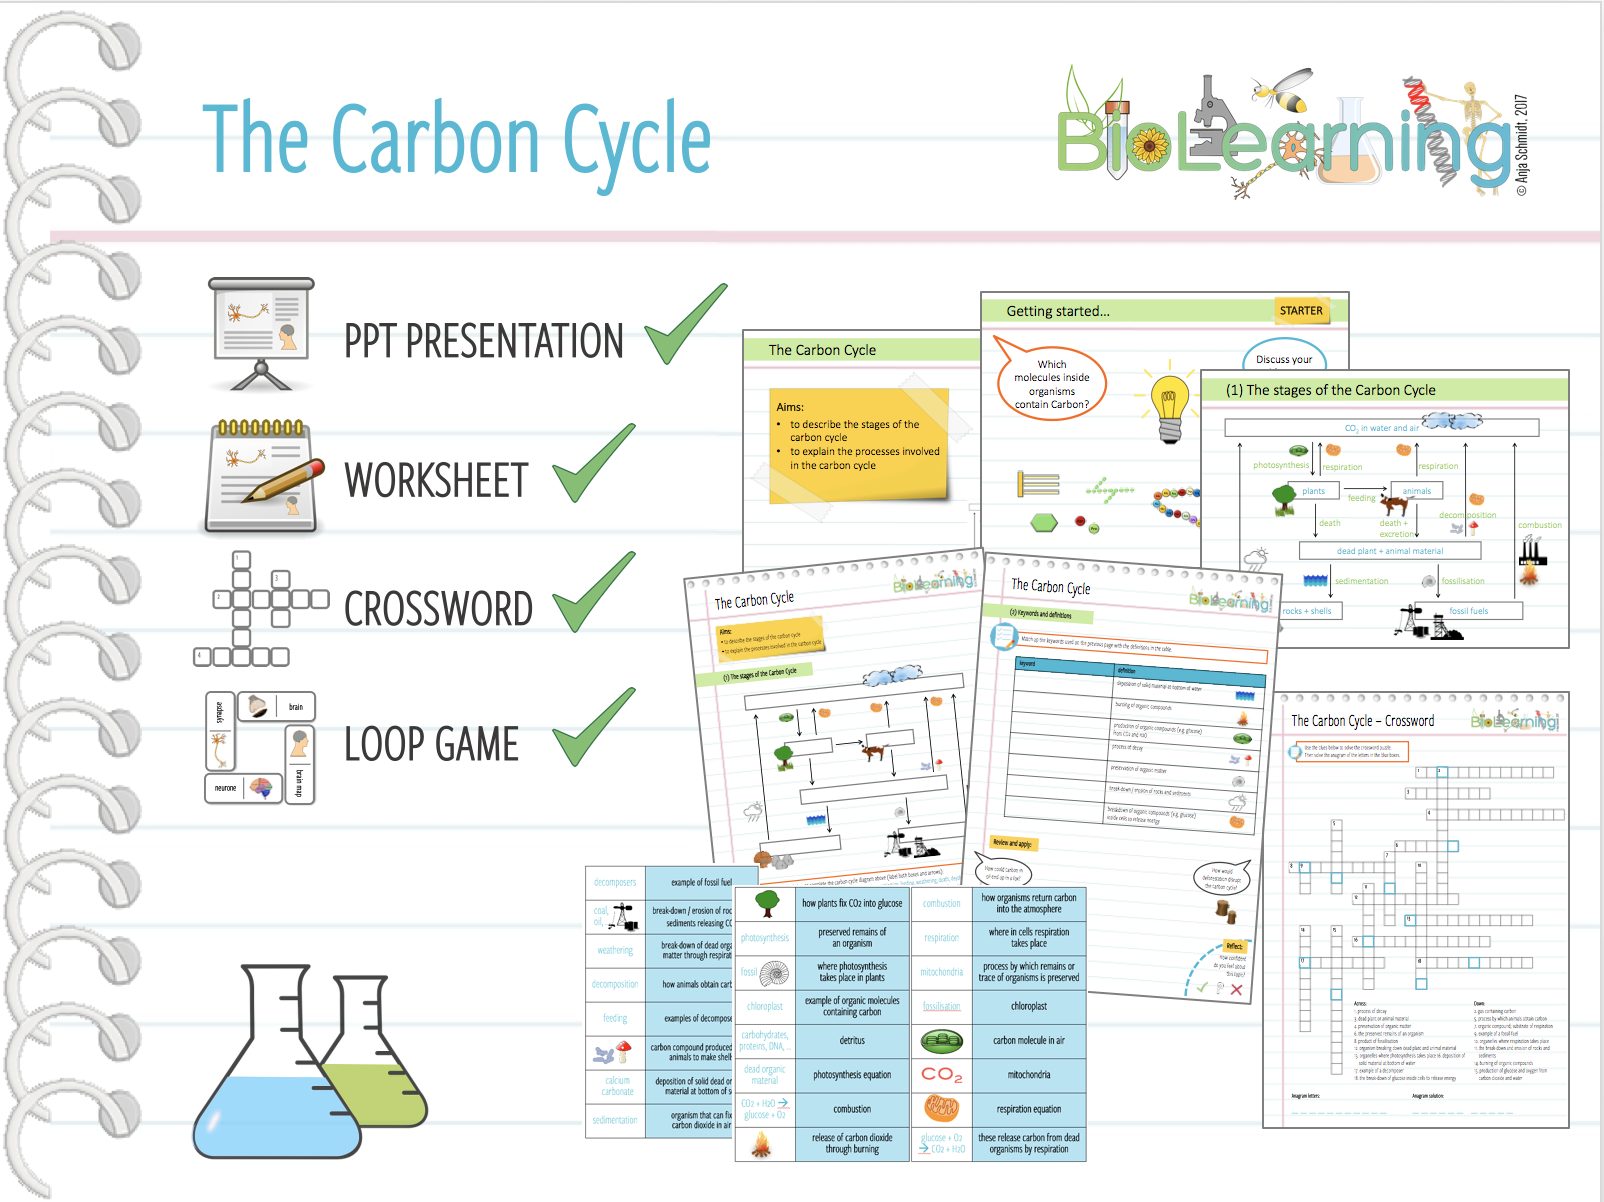 Worksheets Carbon Cycle Worksheets 4x carbon cycle powerpoint ppt worksheet loop game and crossword ks3ks4 by anjacschmidt teaching resources tes